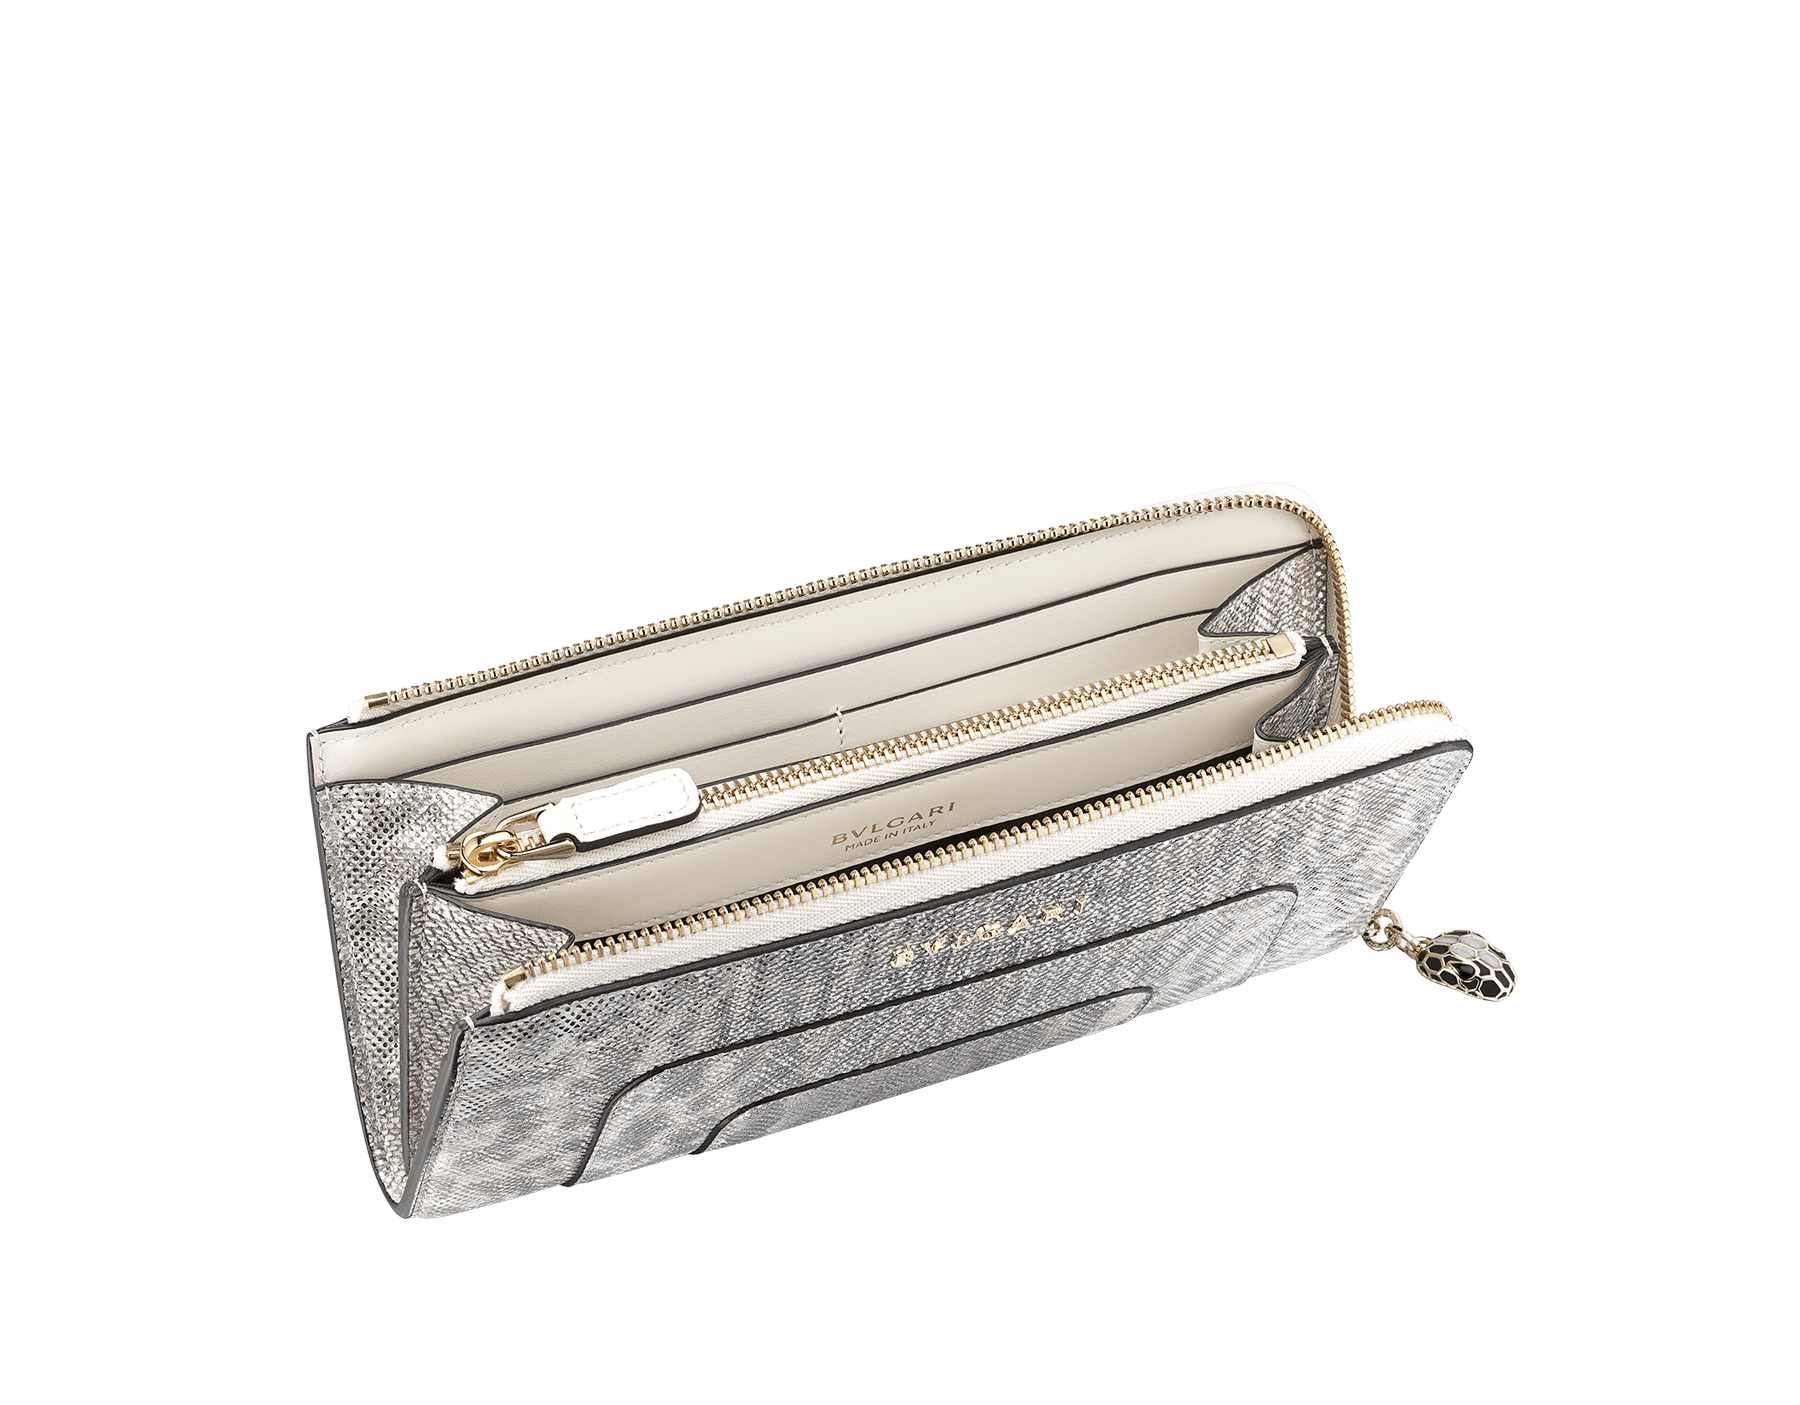 Serpenti Forever L-shaped zipped wallet in ruby red metallic karung skin and calf leather. Iconic snakehead zip puller in black and glitter silver enamel, with black enamel eyes SEA-WLT-MZP-SLIM-L-MK image 2